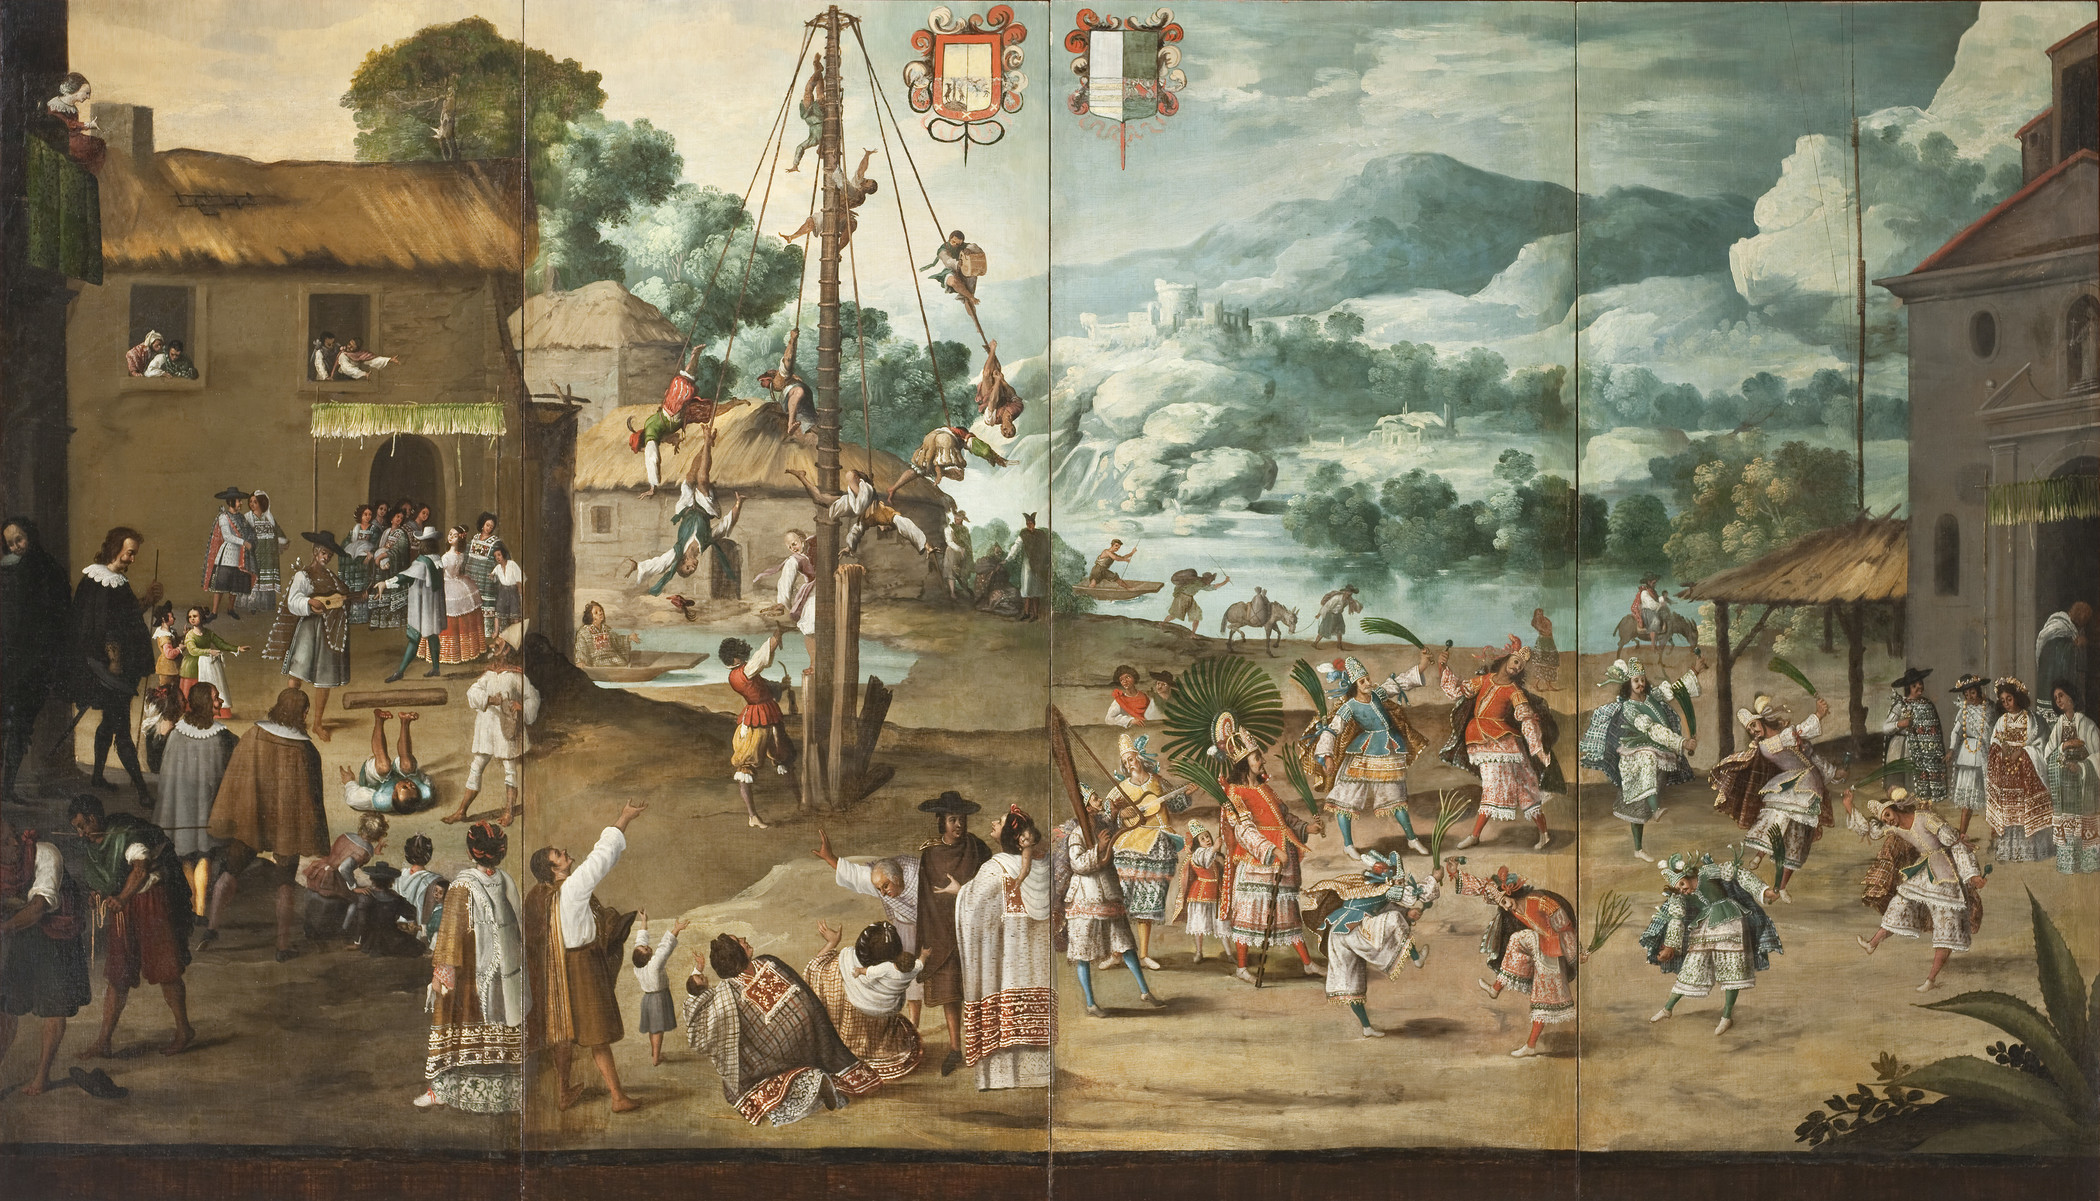 Folding Screen with Indian Wedding and Flying Pole (Biombo con desposorio indígena y palo volador), c. 1690, Los Angeles County Museum of Art, purchased with funds provided by the Bernard and Edith Lewin Collection of Mexican Art Deaccession Fund, photo © Museum Associates/LACMA